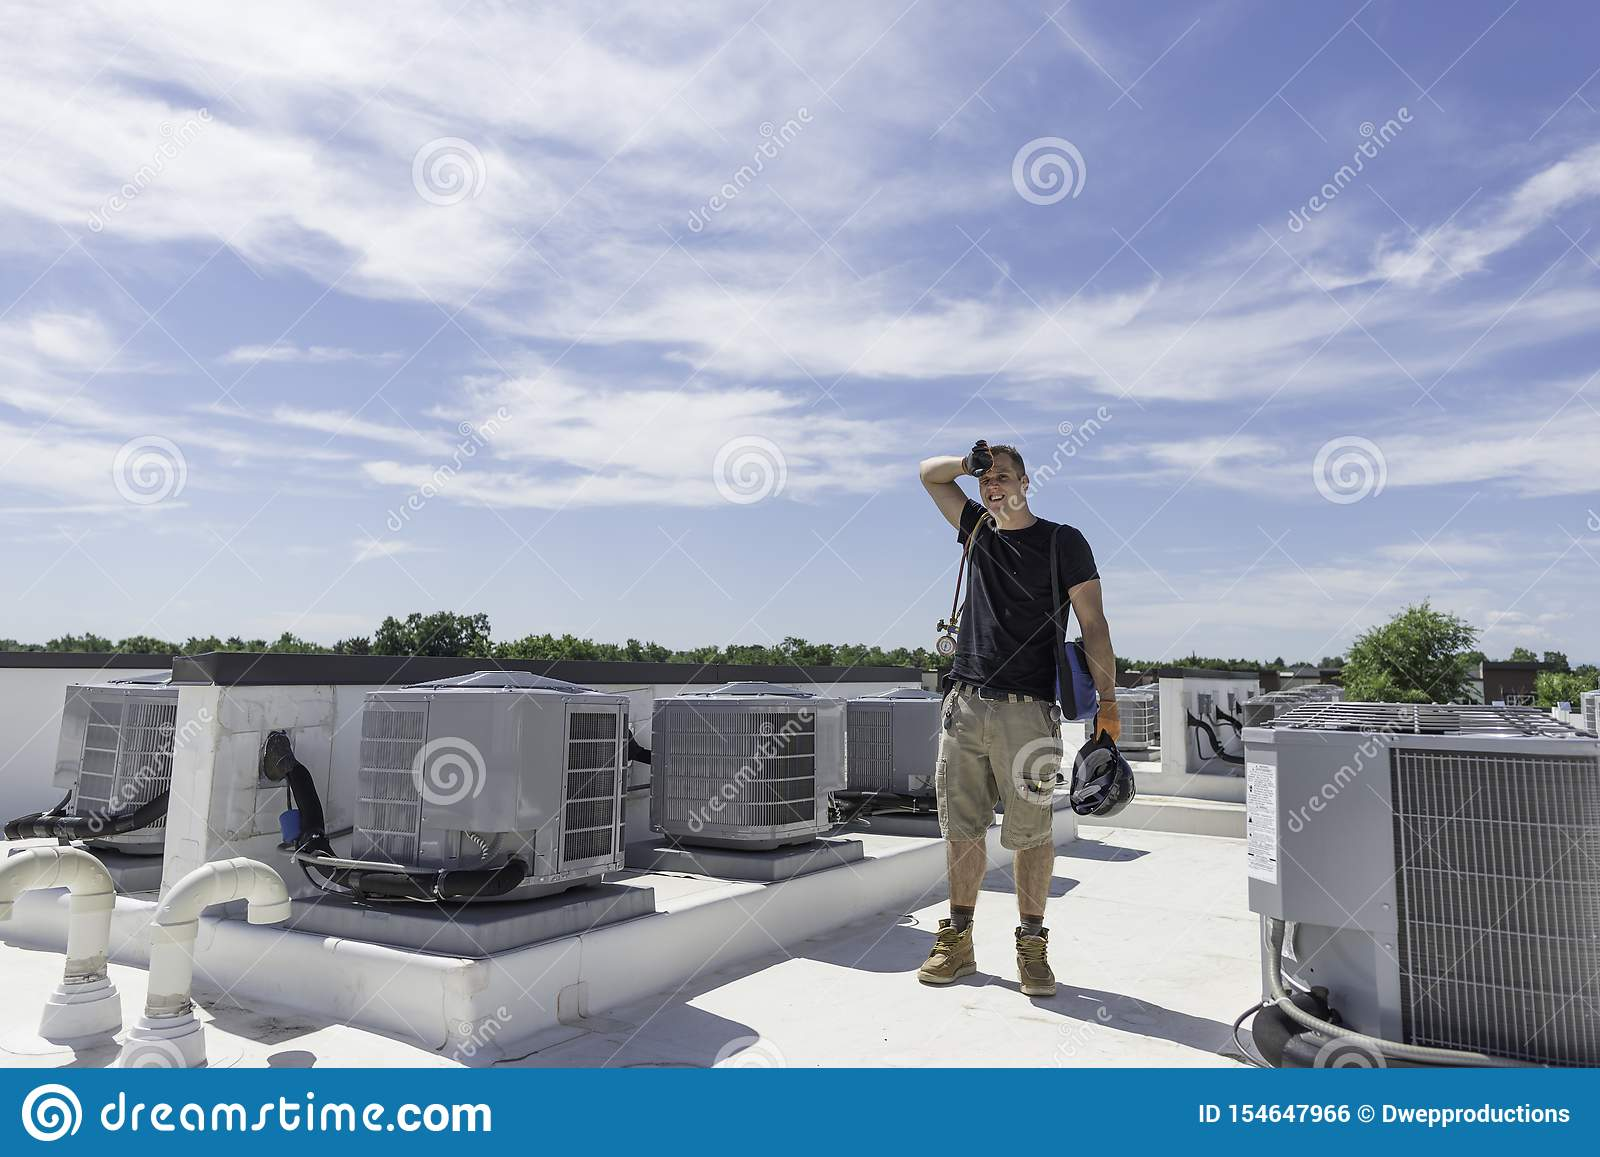 hot day around air conditioners on roof hvac dreamstime stock photo